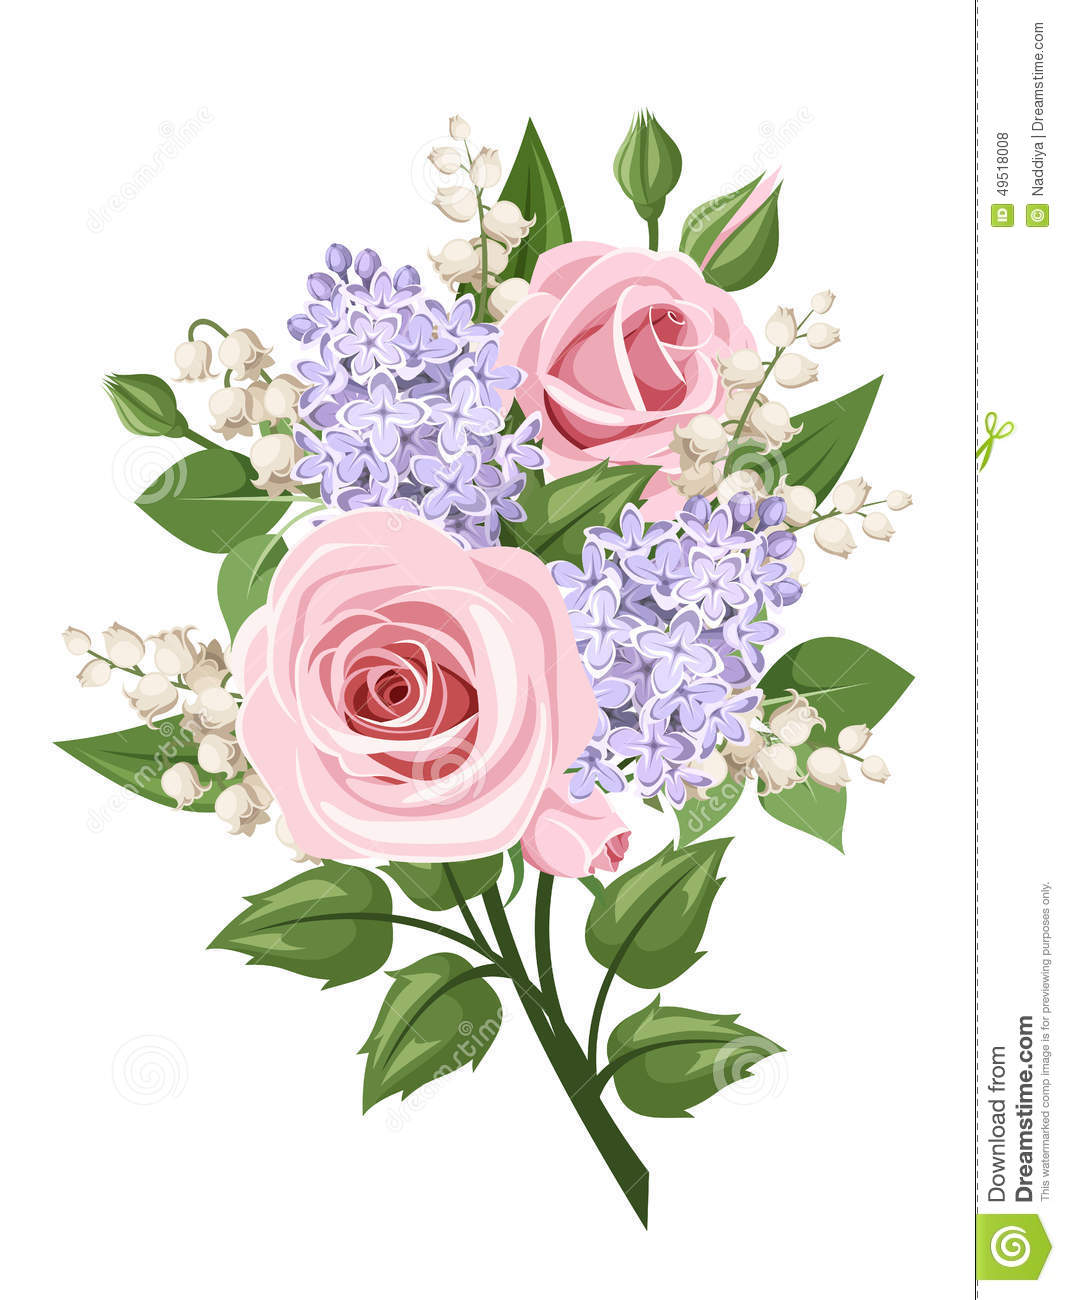 Bouquet with pink roses lily of the valley and lilac flowers bouquet with pink roses lily of the valley and lilac flowers vector illustration izmirmasajfo